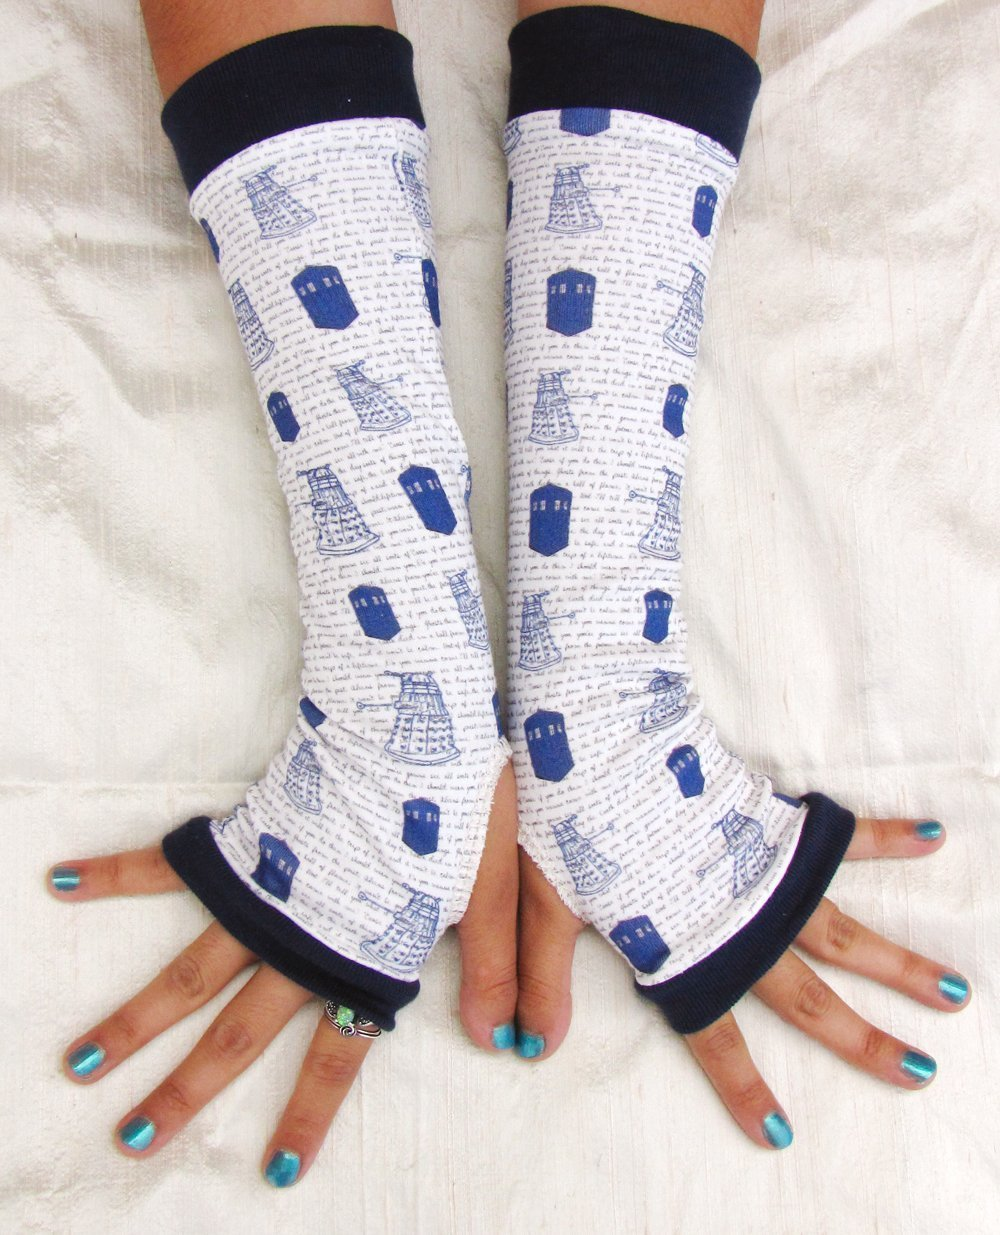 Whovian Cosplay Arm Warmers Fingerless Gloves